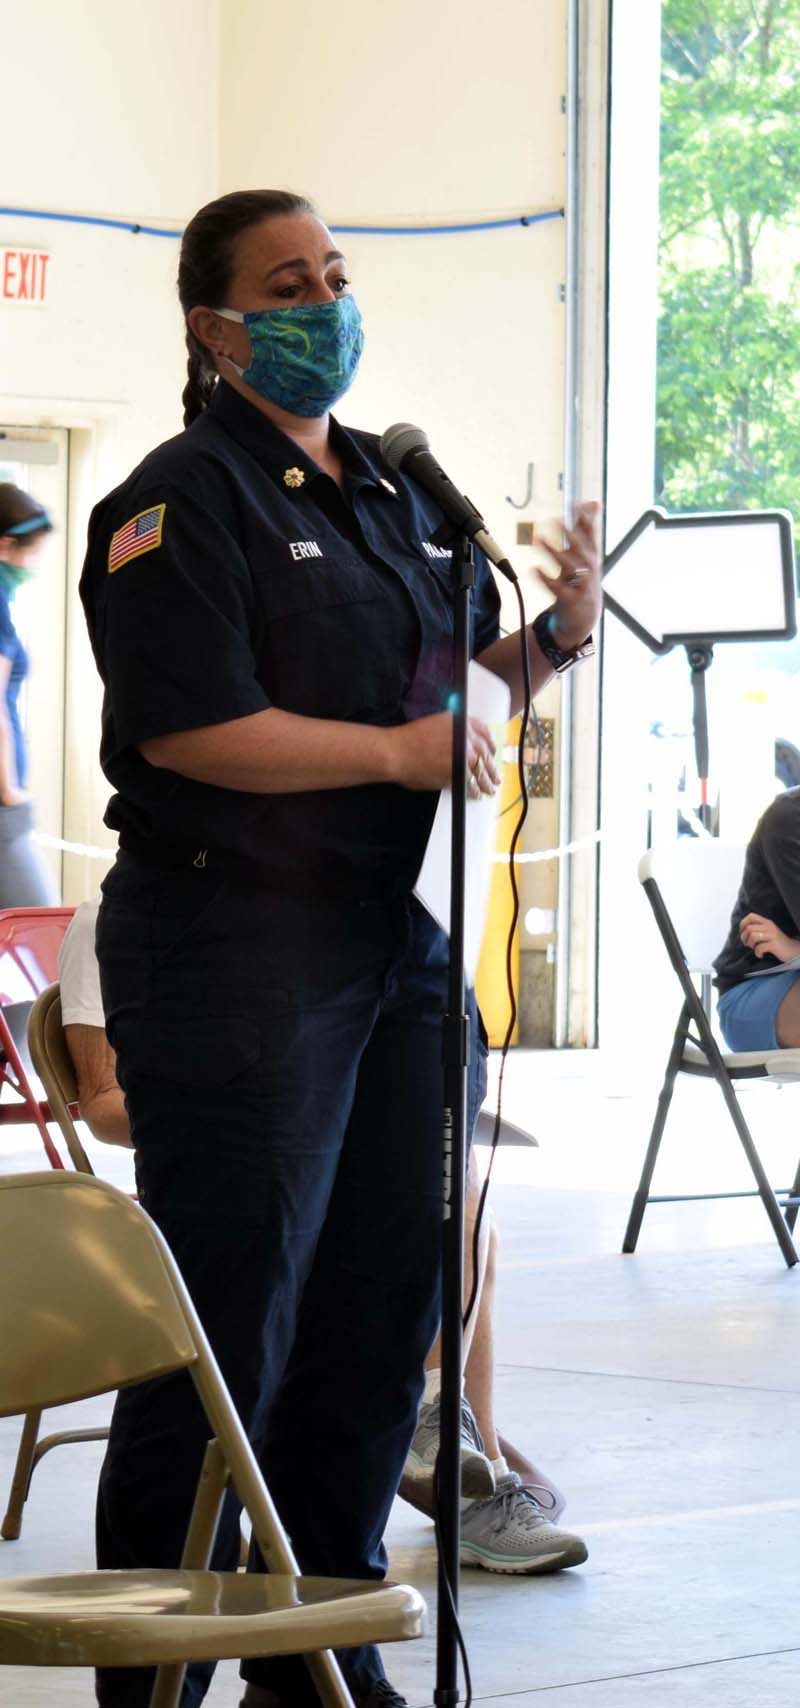 Erin Bean, deputy director of the Wiscasset Ambulance Service, explains the increase in Dresden's price for the service at Dresden's annual town meeting on Saturday, July 18. (Evan Houk photo)